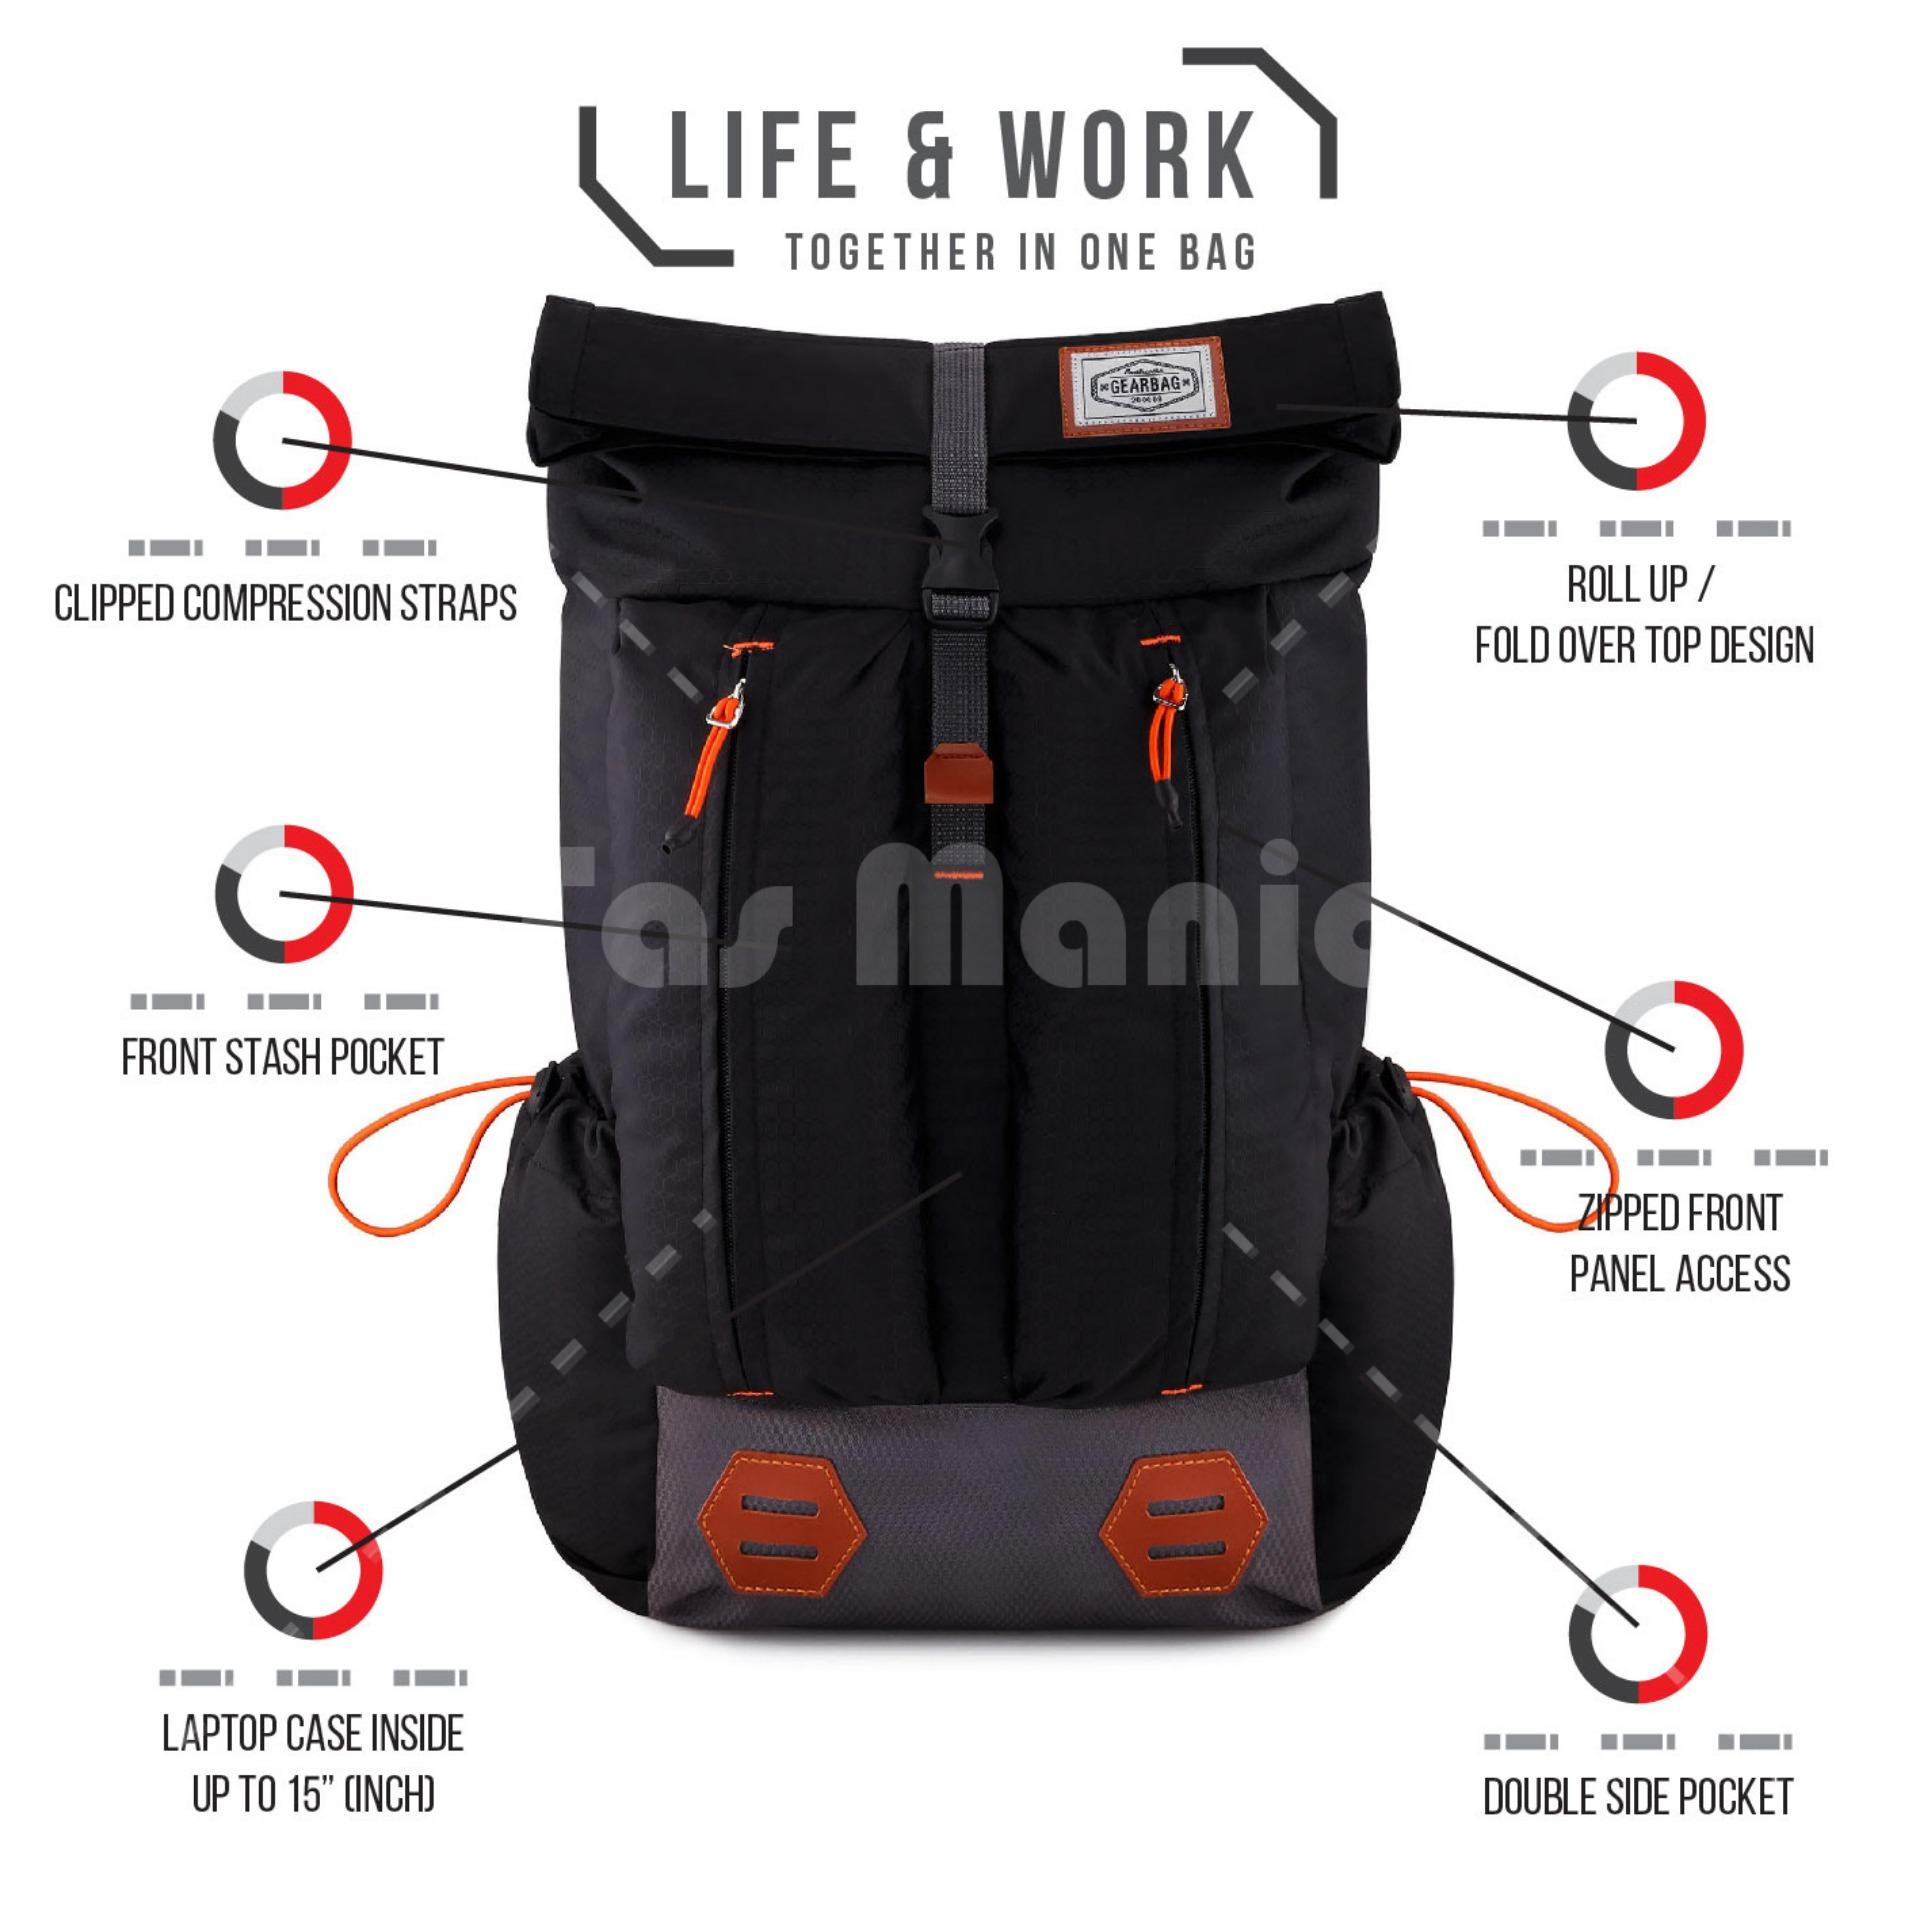 Gear Bag Excalibur Crossover Travel Duffle Tas Pakaian Multi Fabella Ransel Mount Everest Clr Adventure Laptop Backpack